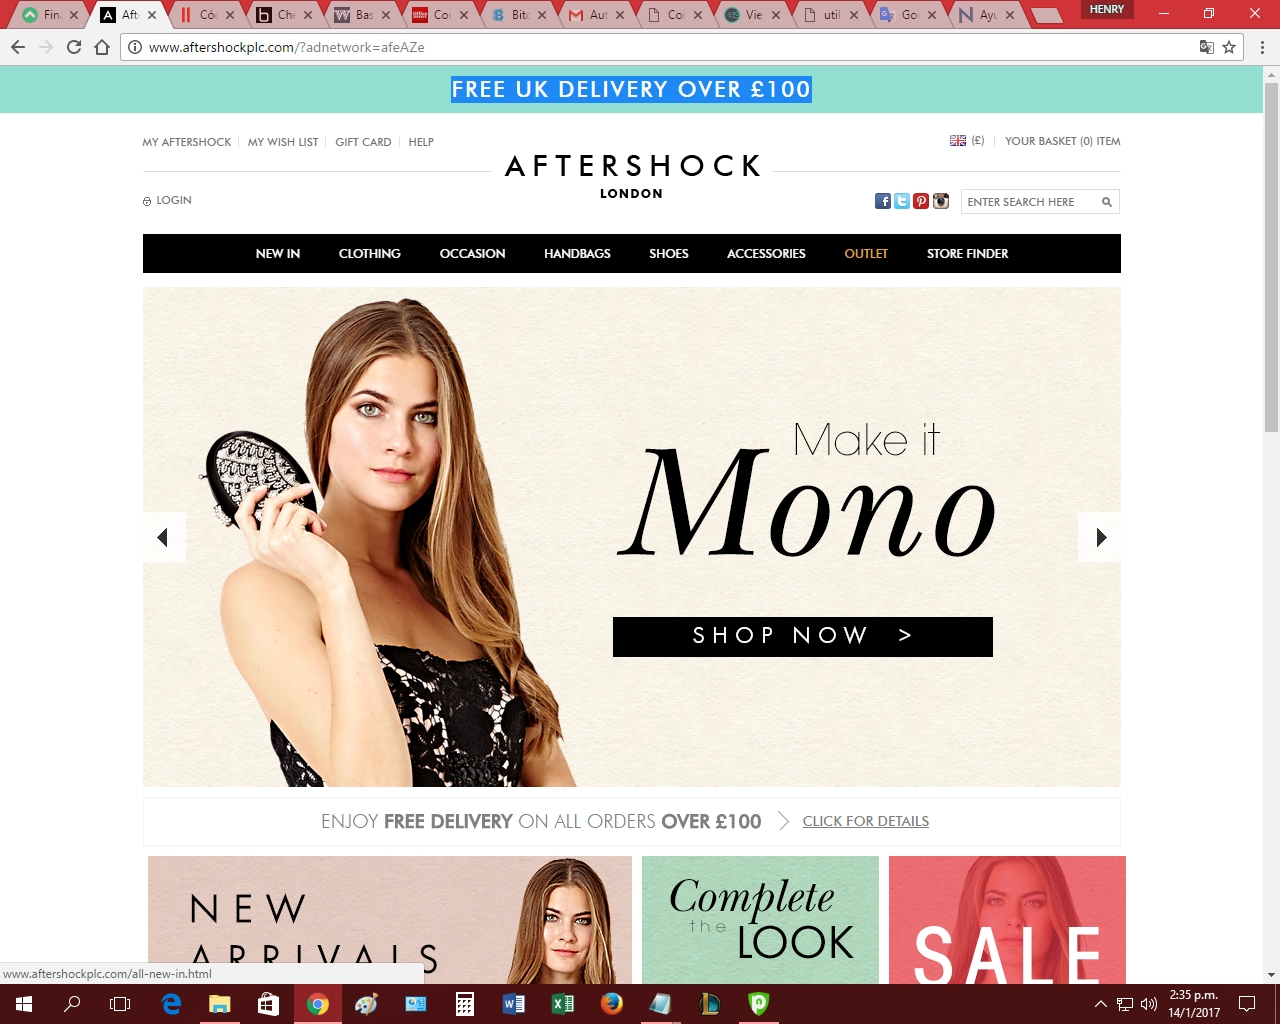 We have aftershock coupons for you to consider including promo codes and 0 deals in December Grab a free sepfeyms.ga coupons and save money. Aftershock London sells the latest luxury designer womenswear clothing and accessories. Shop online for maxi dresses, evening dresses, tops and accessories.5/5(1).